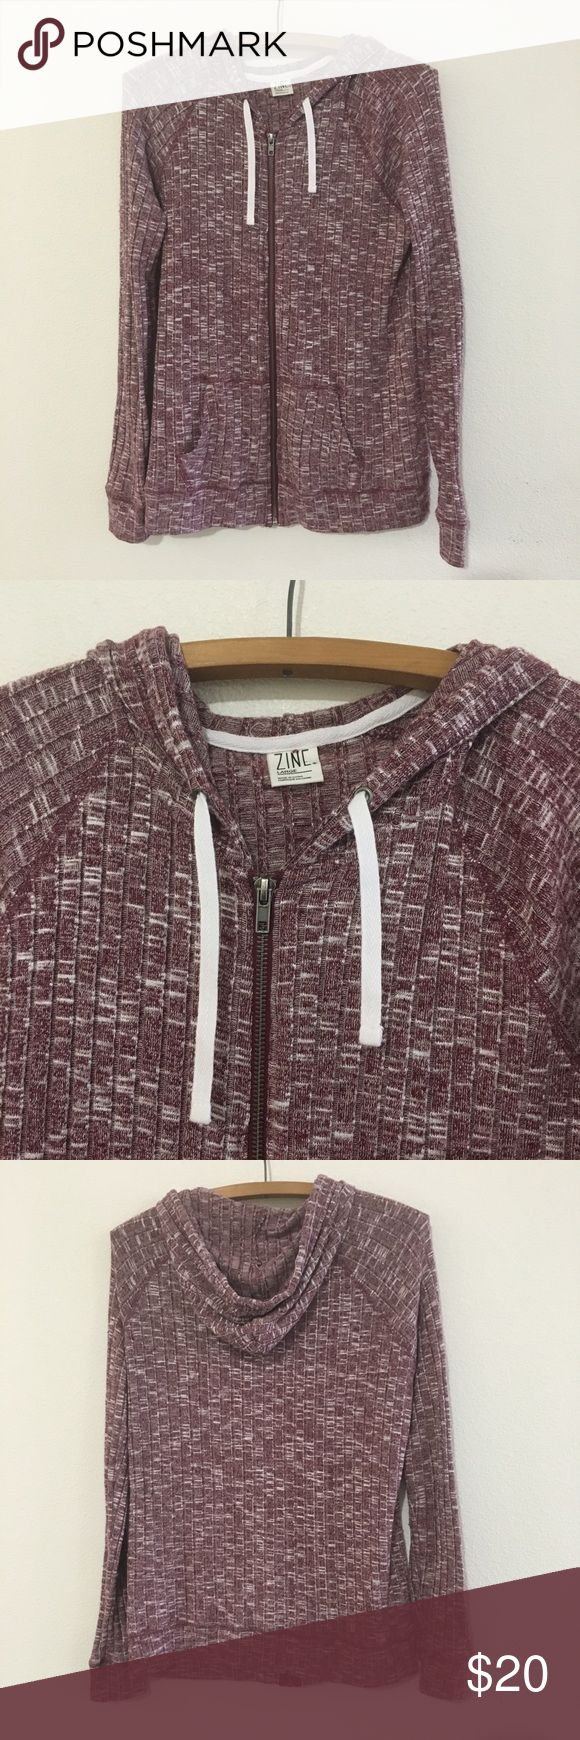 Zine Clothing Maroon & White Zip Up Hoodie Zine Clothing Maroon & White Zip Up Hoodie. Super soft & barely worn.   Size: Large    Good preloved condition.   Bundle fav items for a personal discount. Offers are always welcome, too! No trades or modeling. Thank you! (25) Zine Clothing Tops Sweatshirts & Hoodies